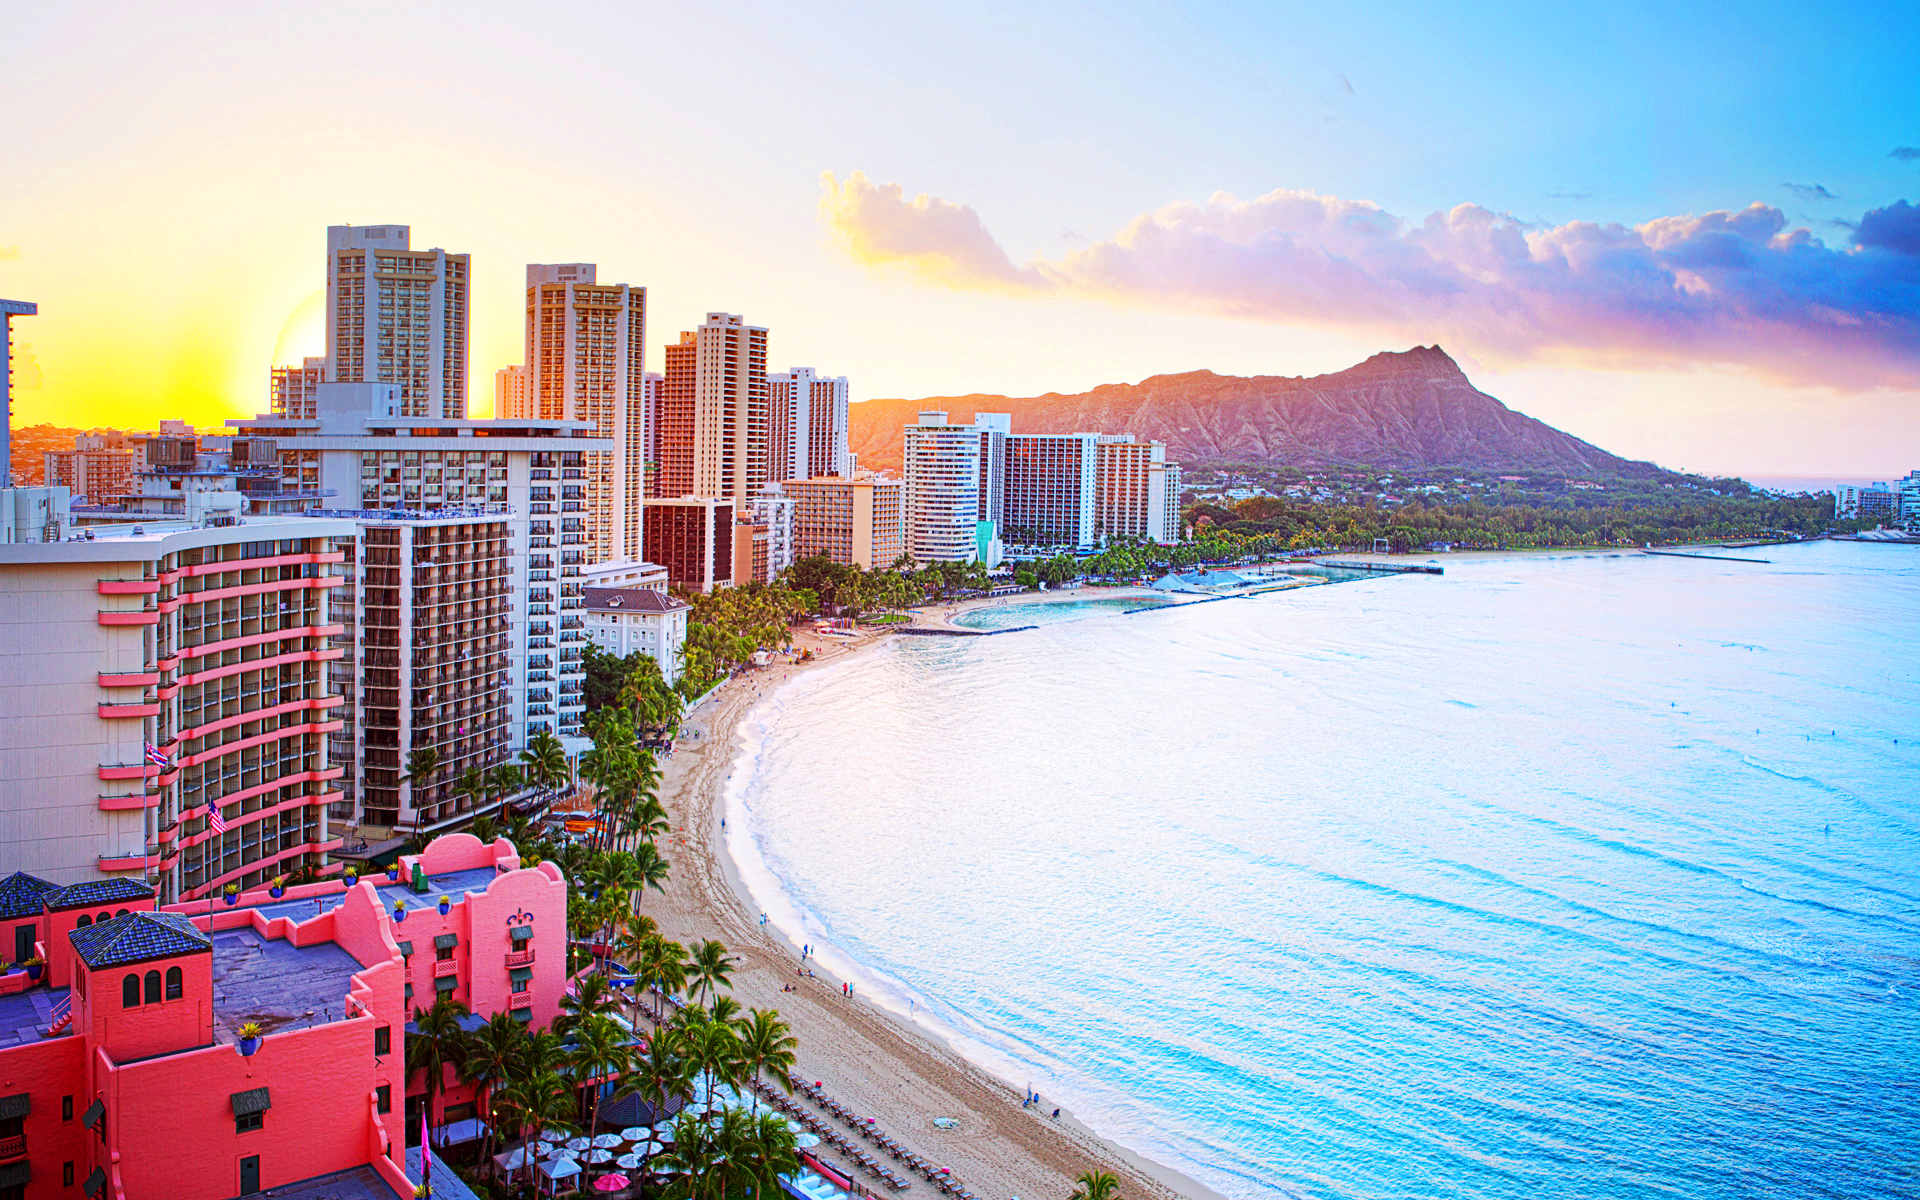 Hawaii waikiki beach wallpaper 1920x1200 21520 1920x1200